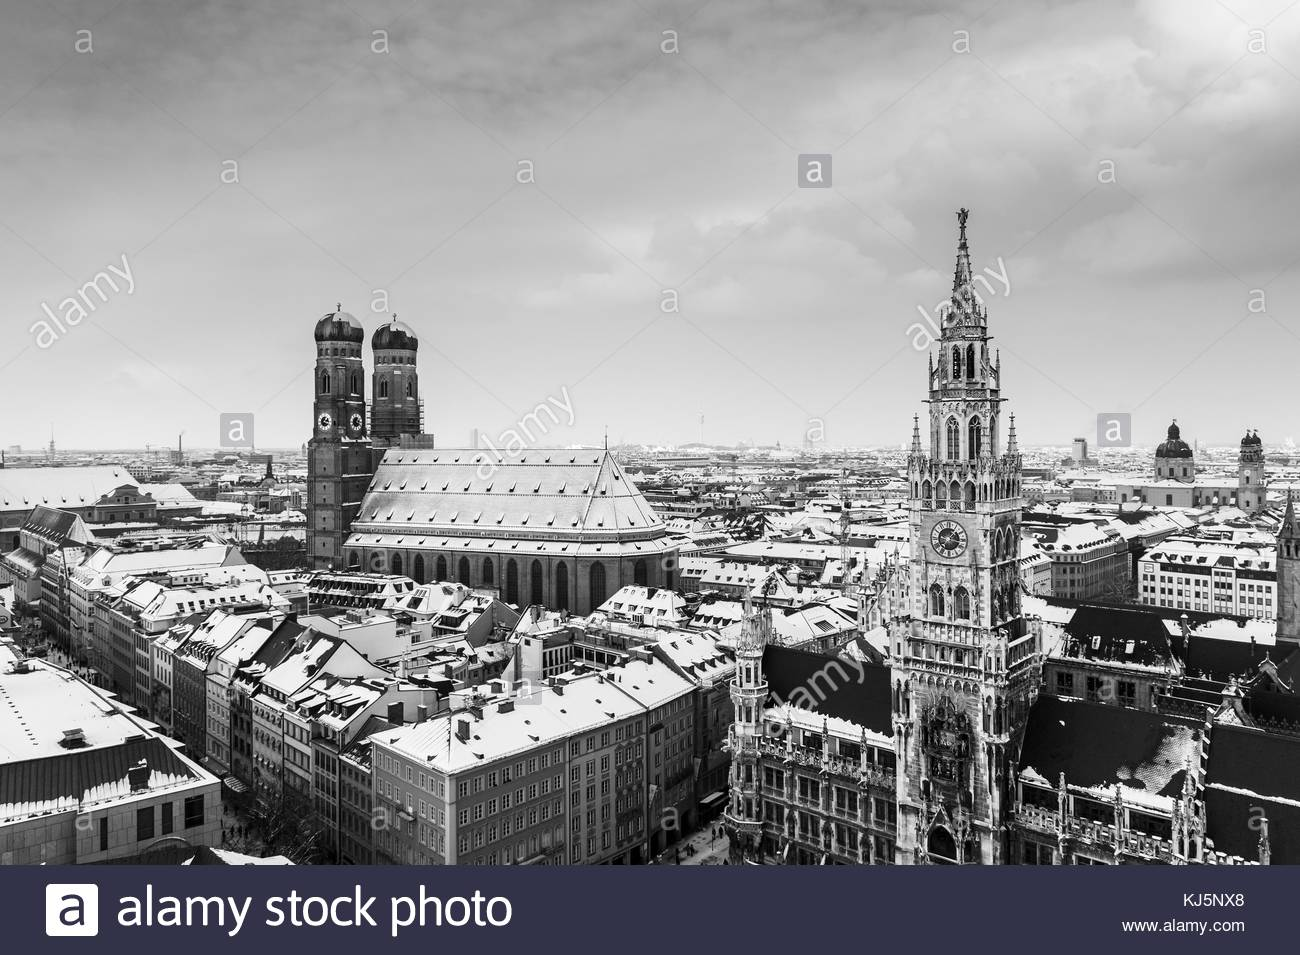 Black and white city overview of Munich, Germany - Stock Image